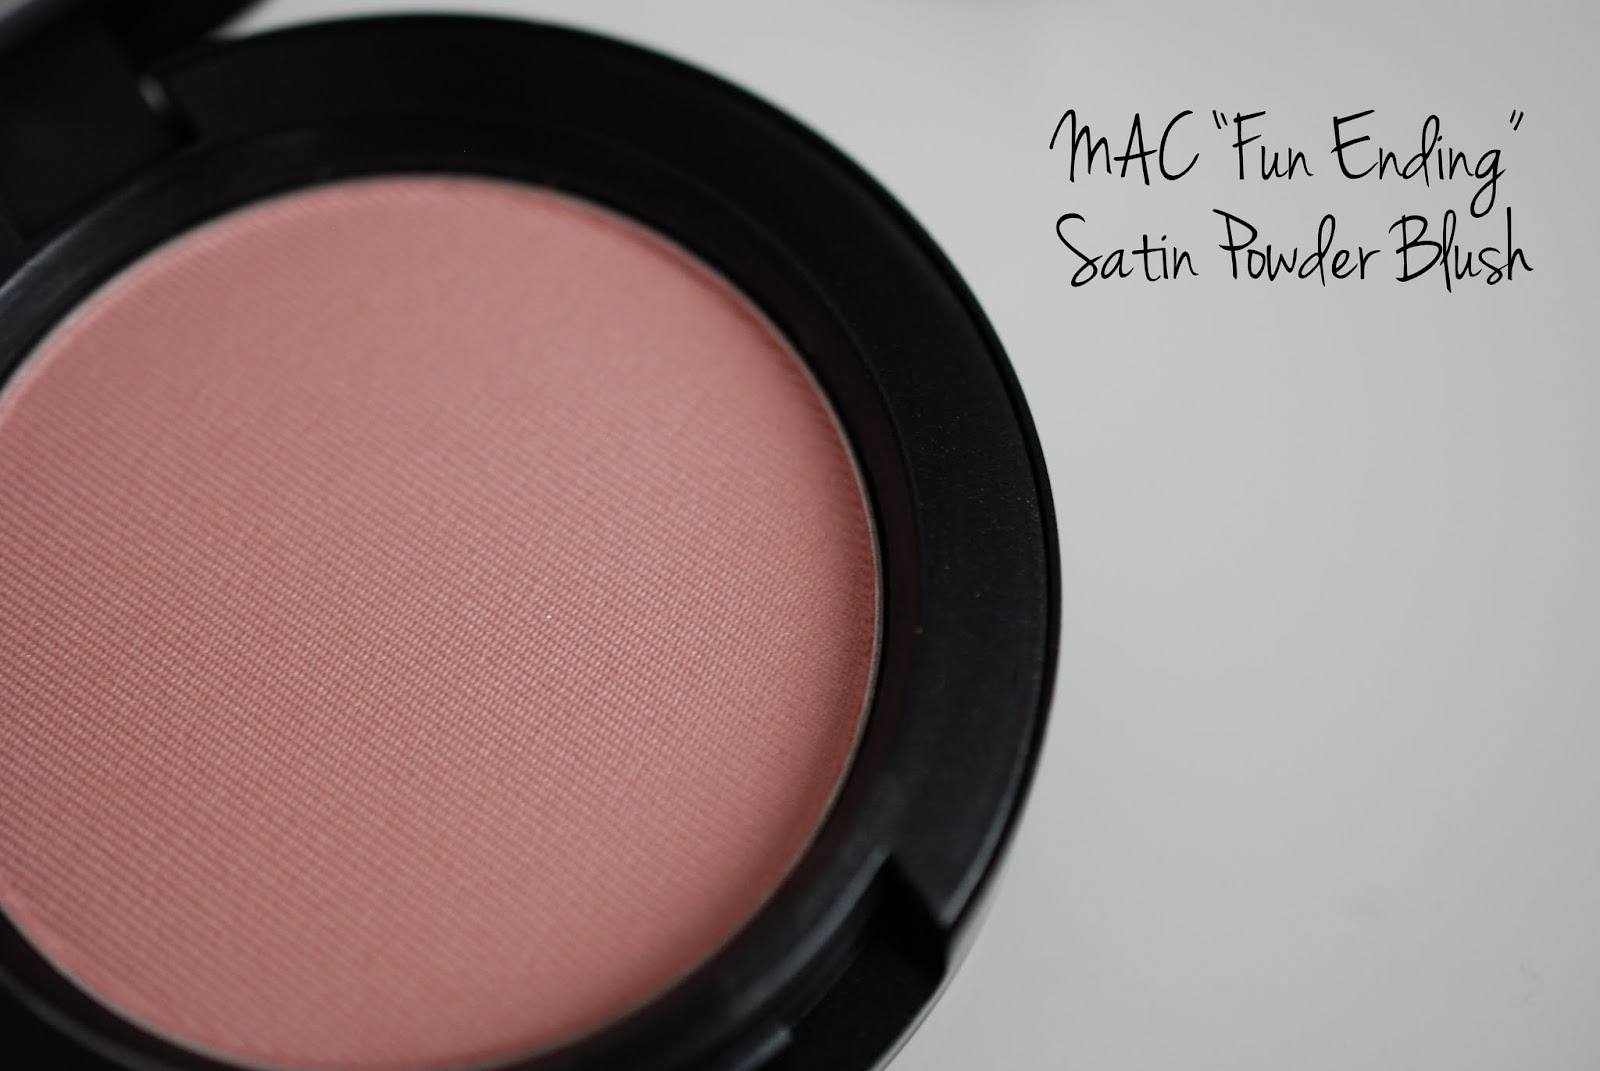 Fun Ending Satin Powder Blush